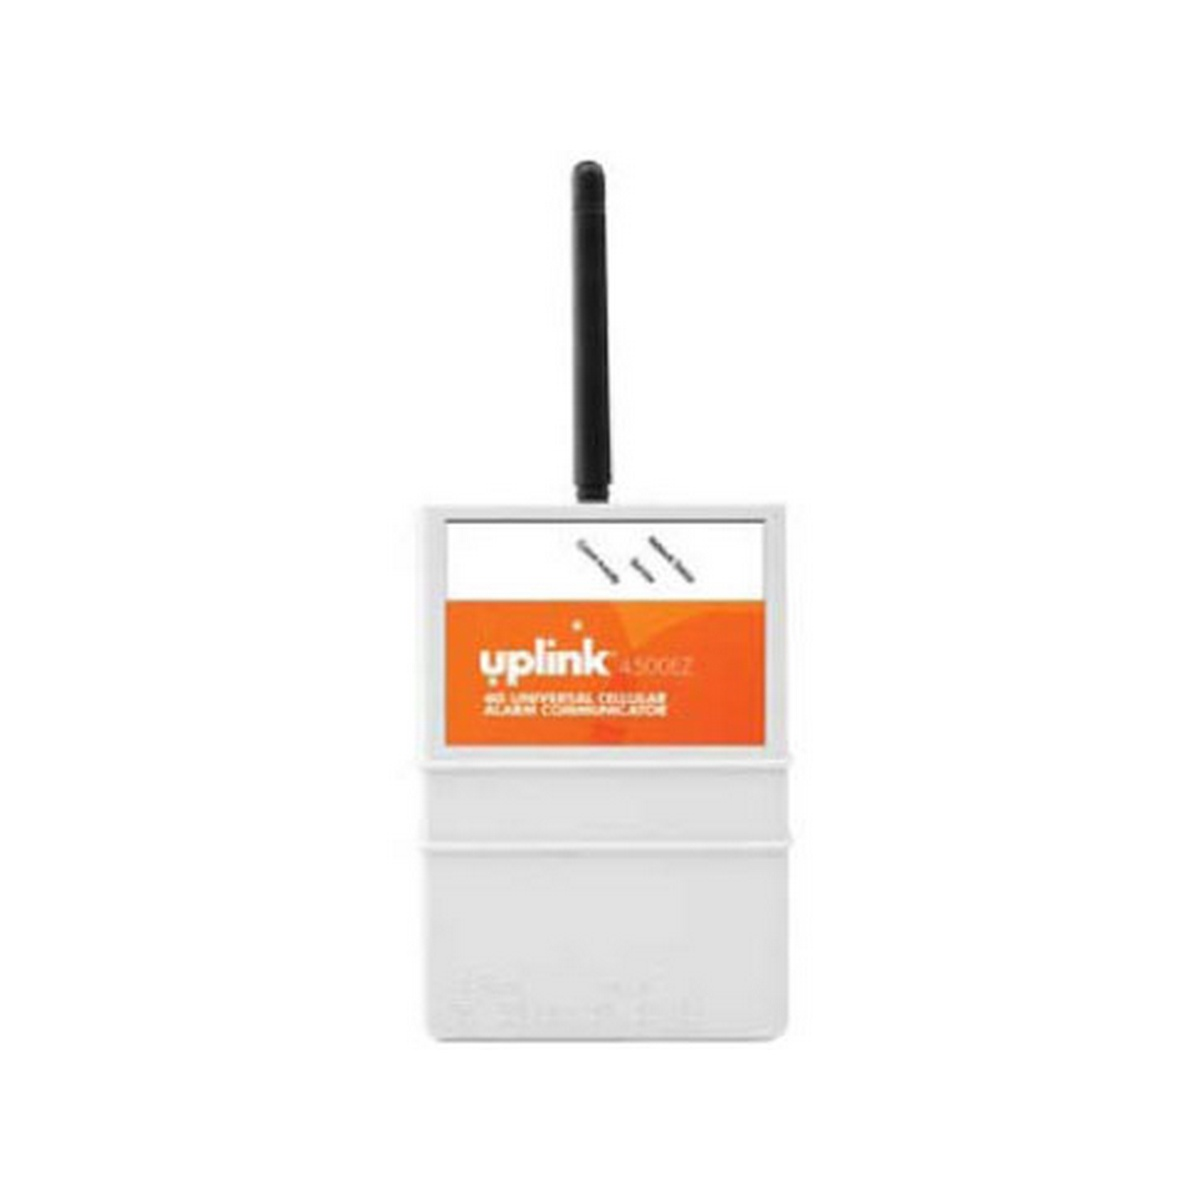 Uplink 4500EZ  Digital cellular communicator 4G